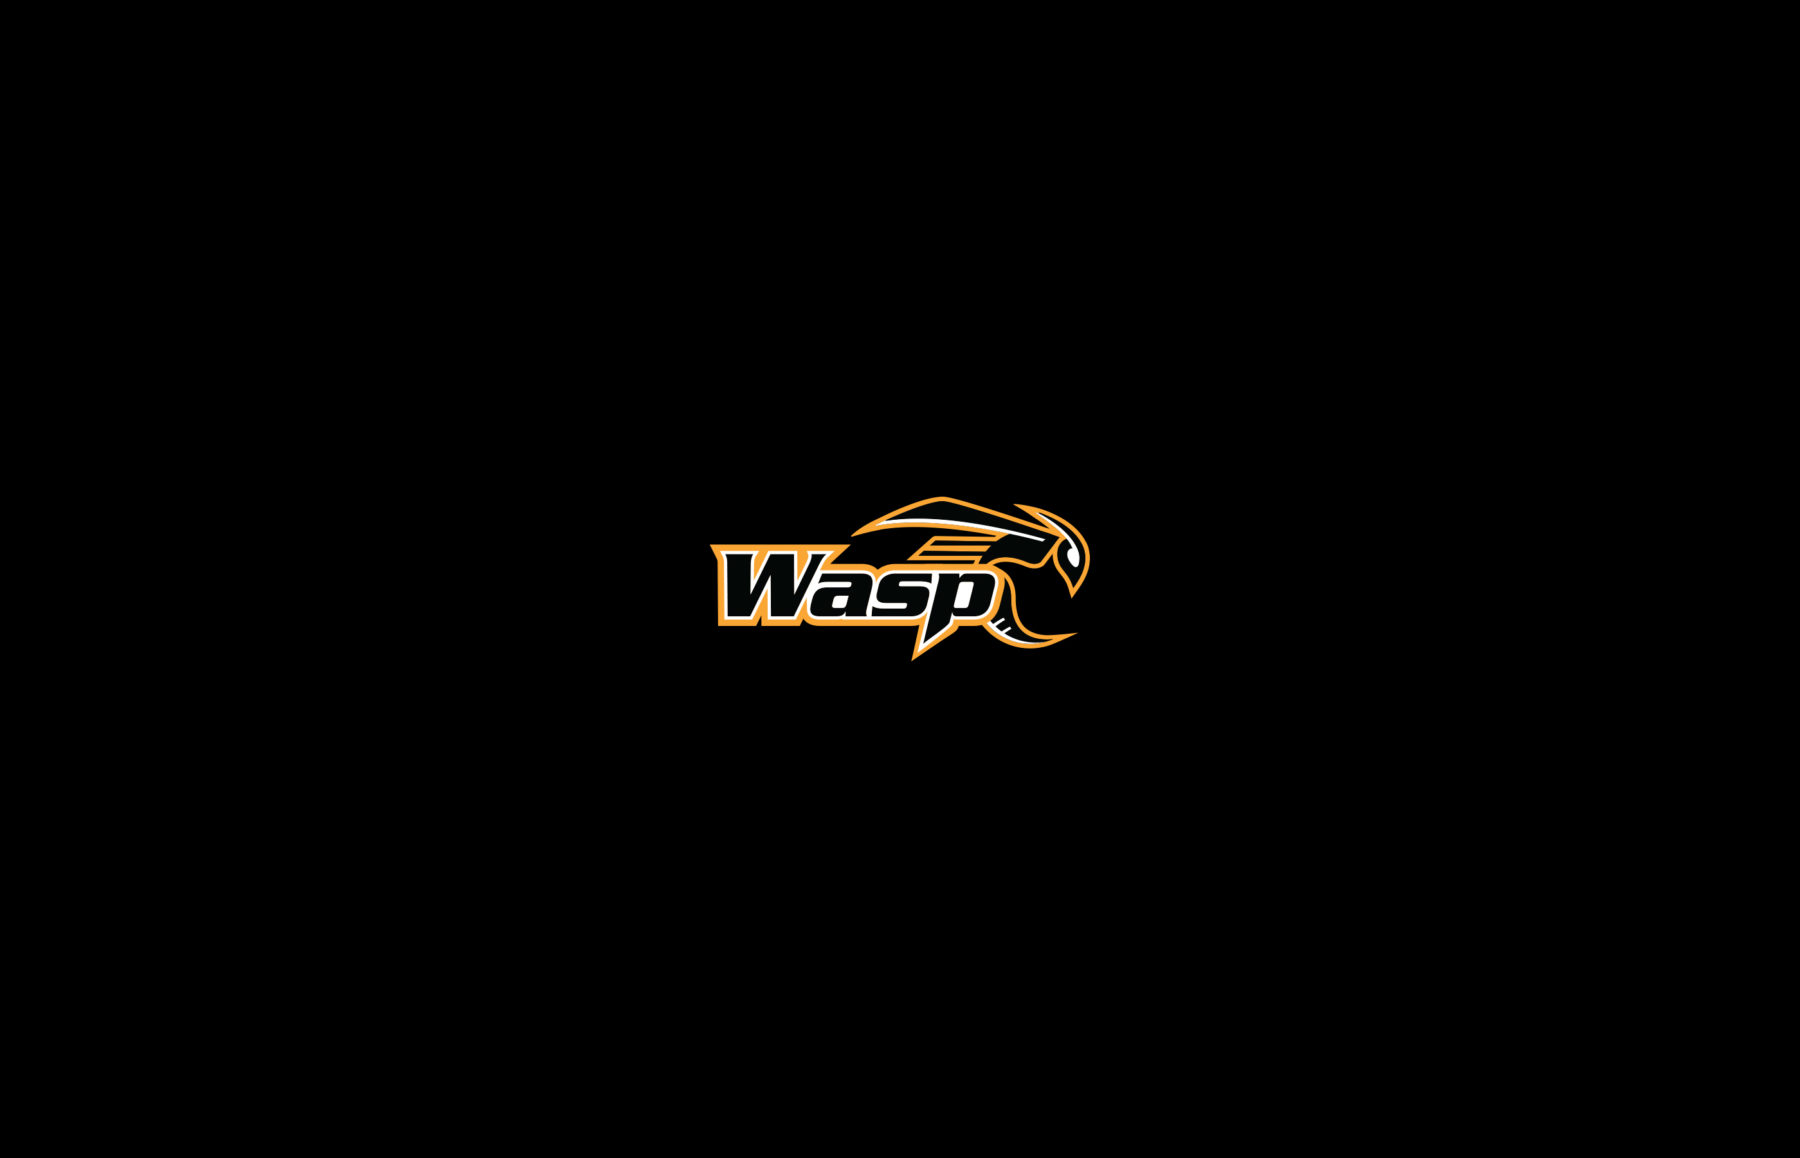 Wasp Brand Full Width